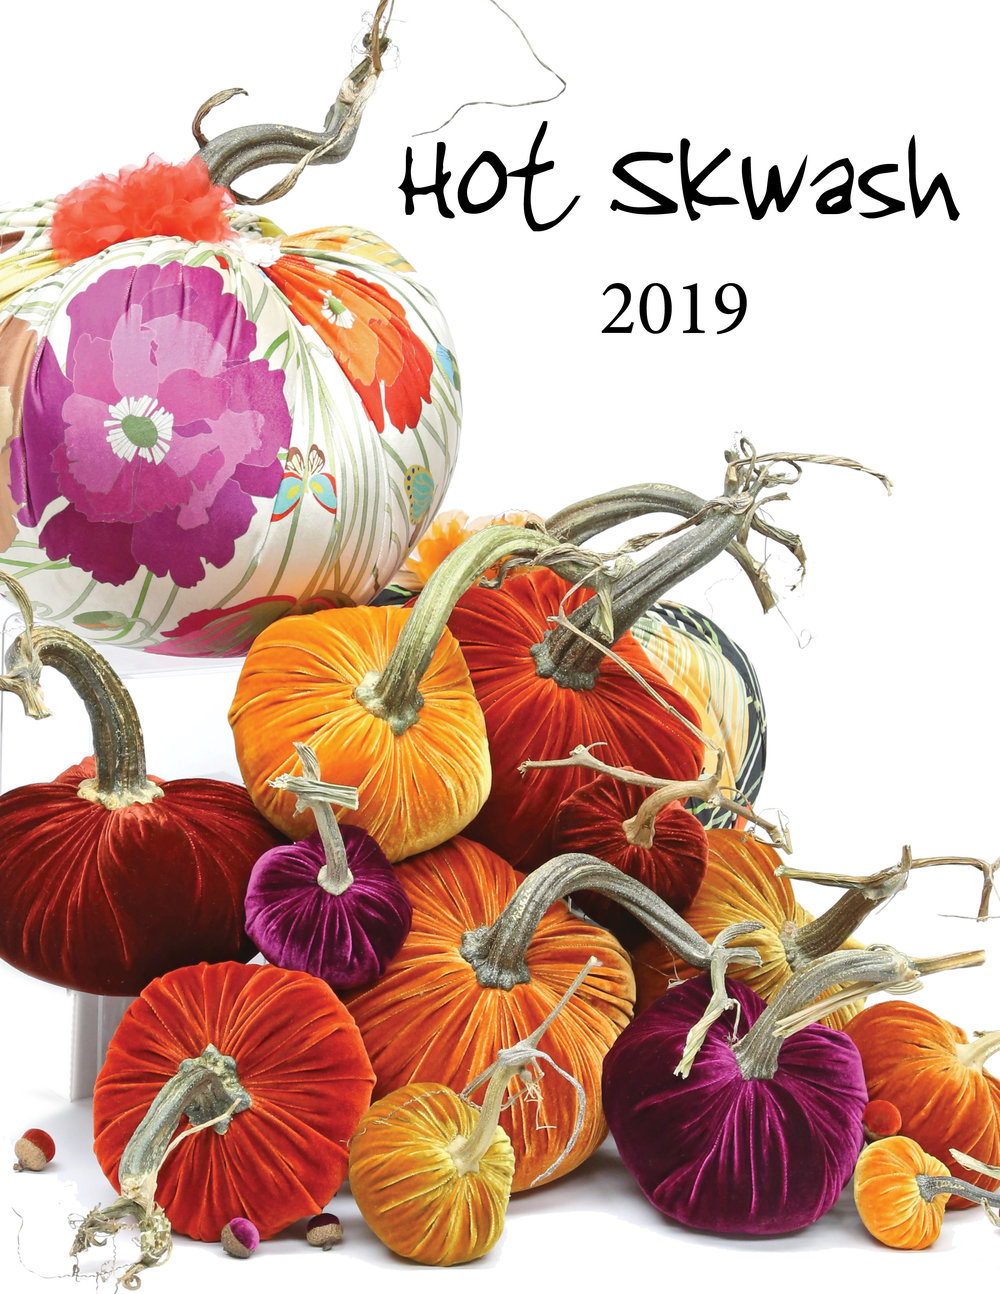 Hot Skwash catalog_12_28_18.jpg